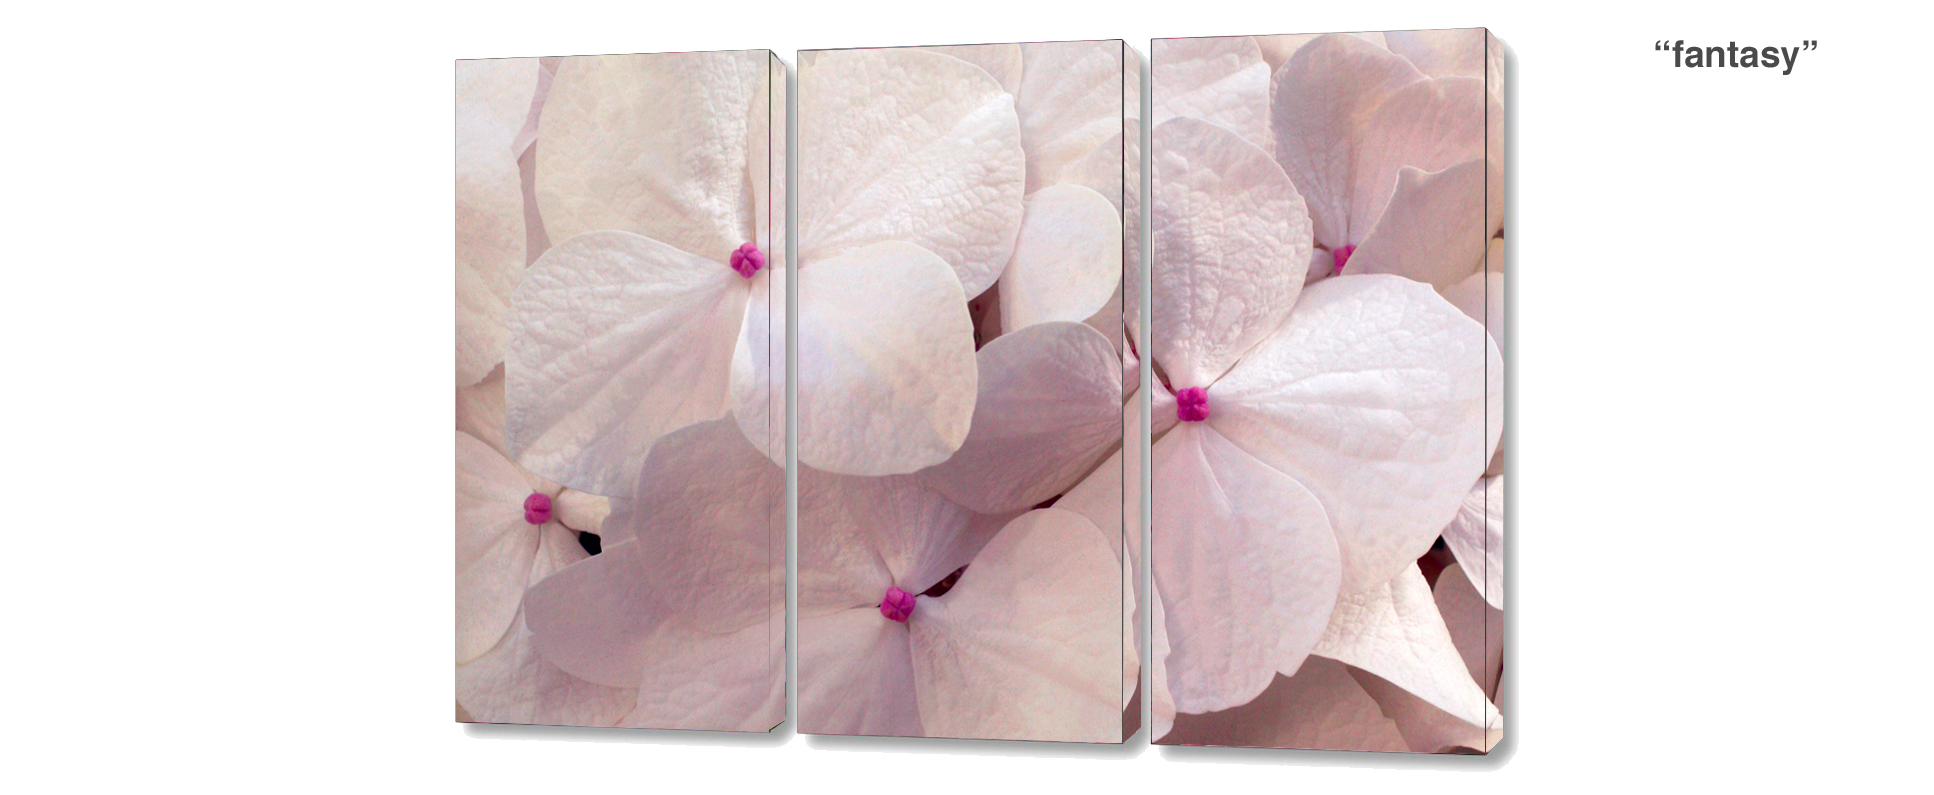 triptych - 3 Piece limited edition giclee canvas floral wall decor